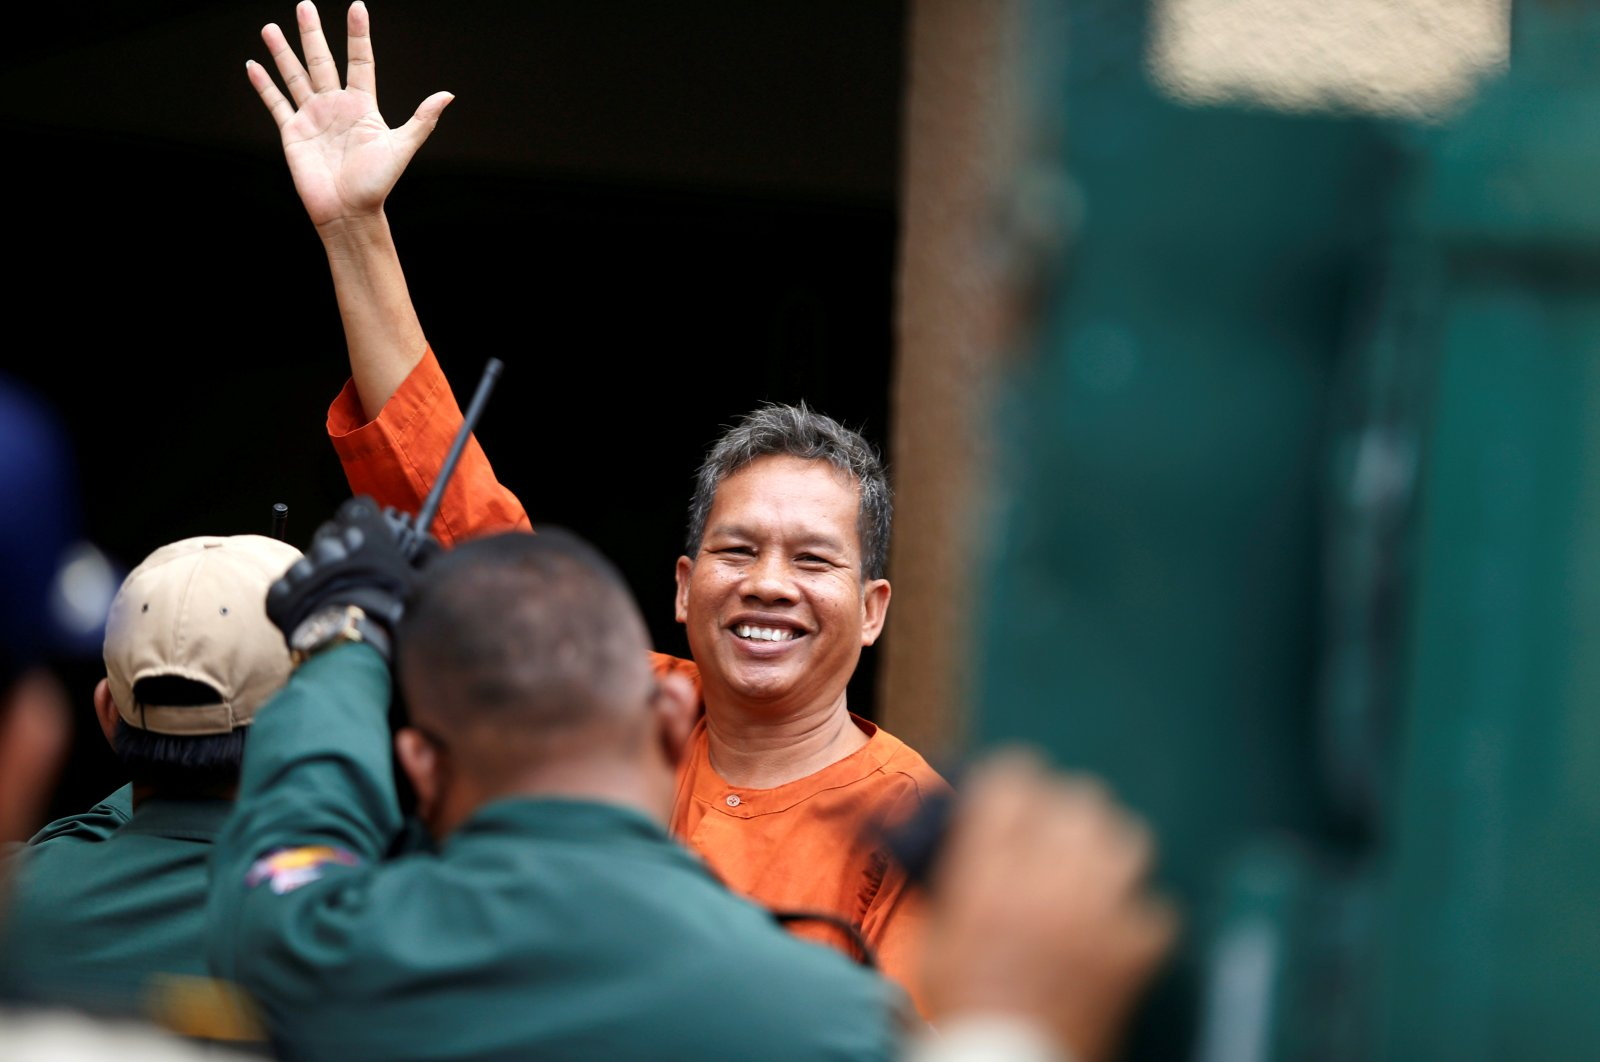 Labor activist Rath Rott Mony arrives to the Phnom Penh Municipal Court for verdict over his role in making a documentary about sex-trafficking that the government said contained fake news, in Phnom Penh, Cambodia on June 26, 2019. (Reuters Photo)